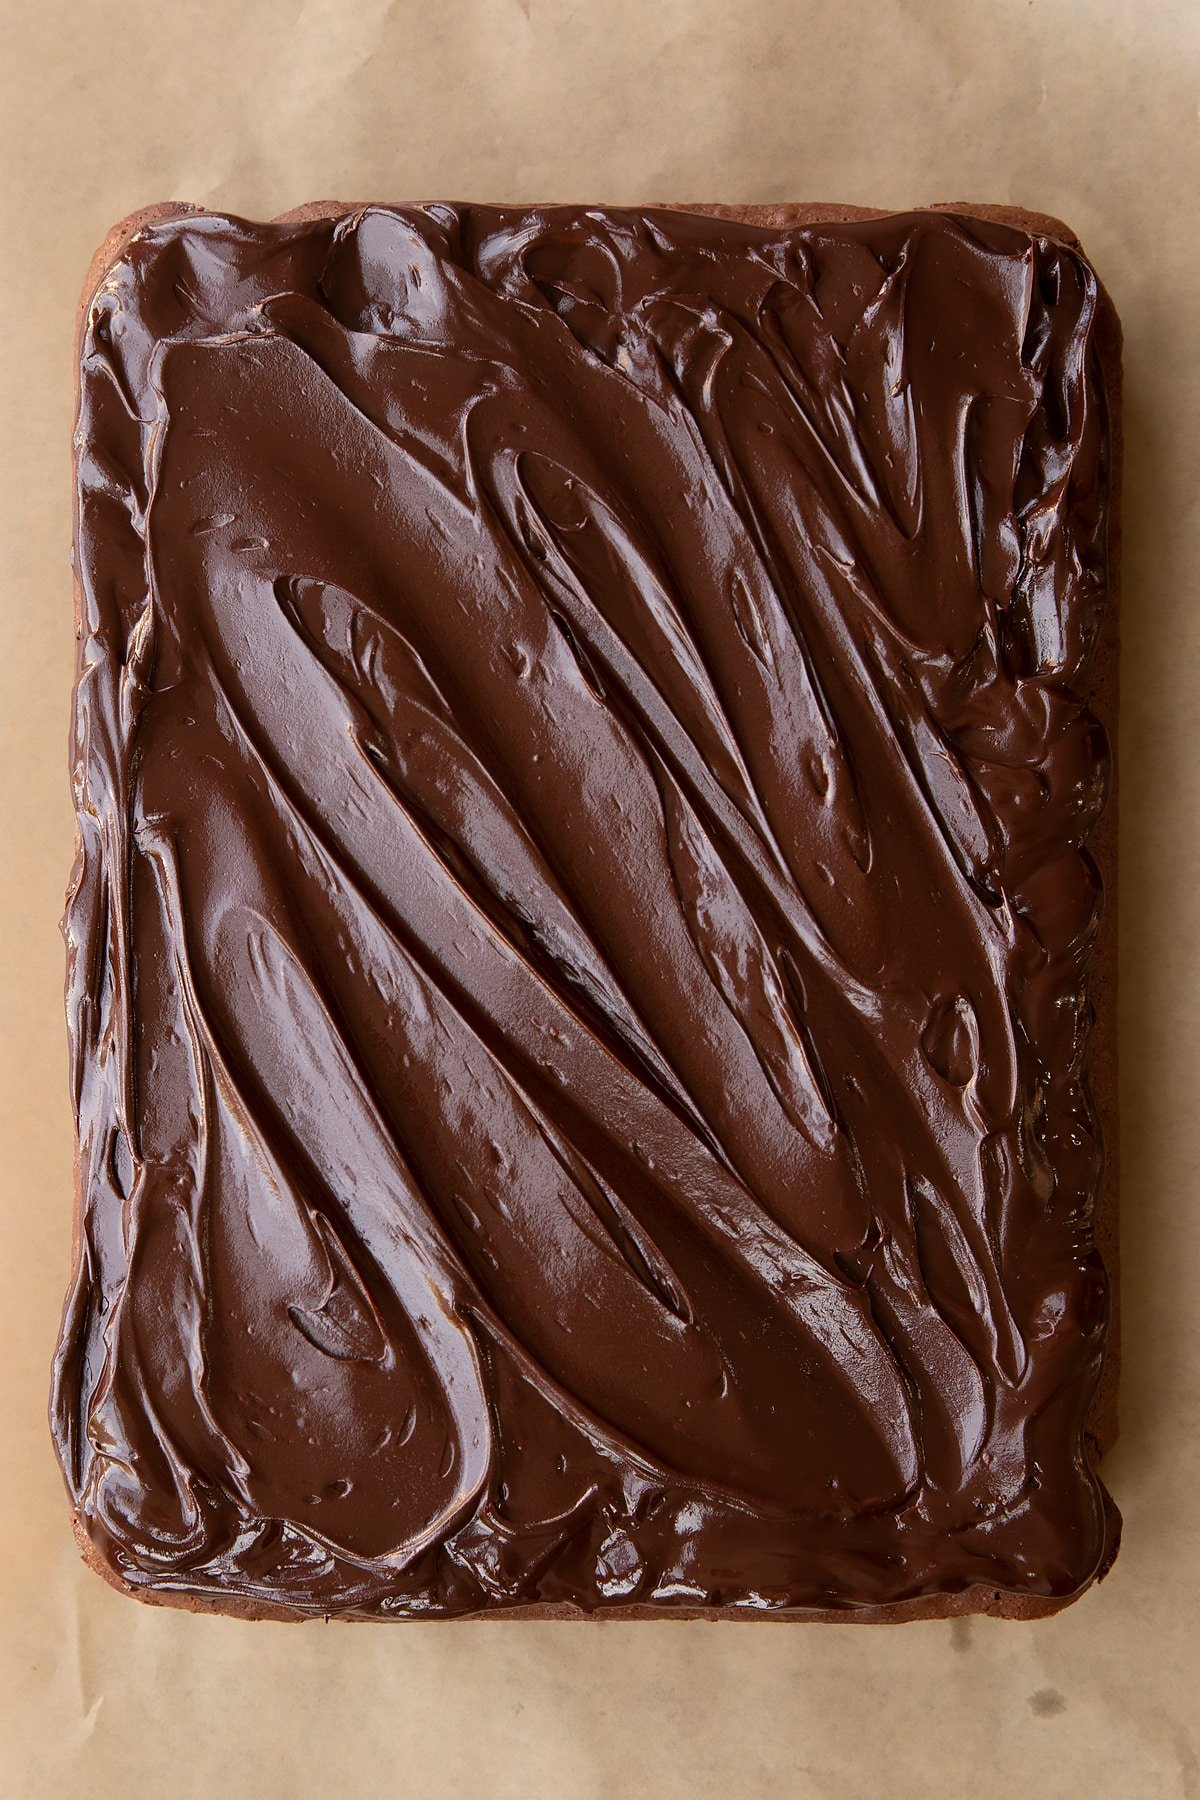 Baked candy cane brownie on baking paper with dark chocolate ganache spread on top.